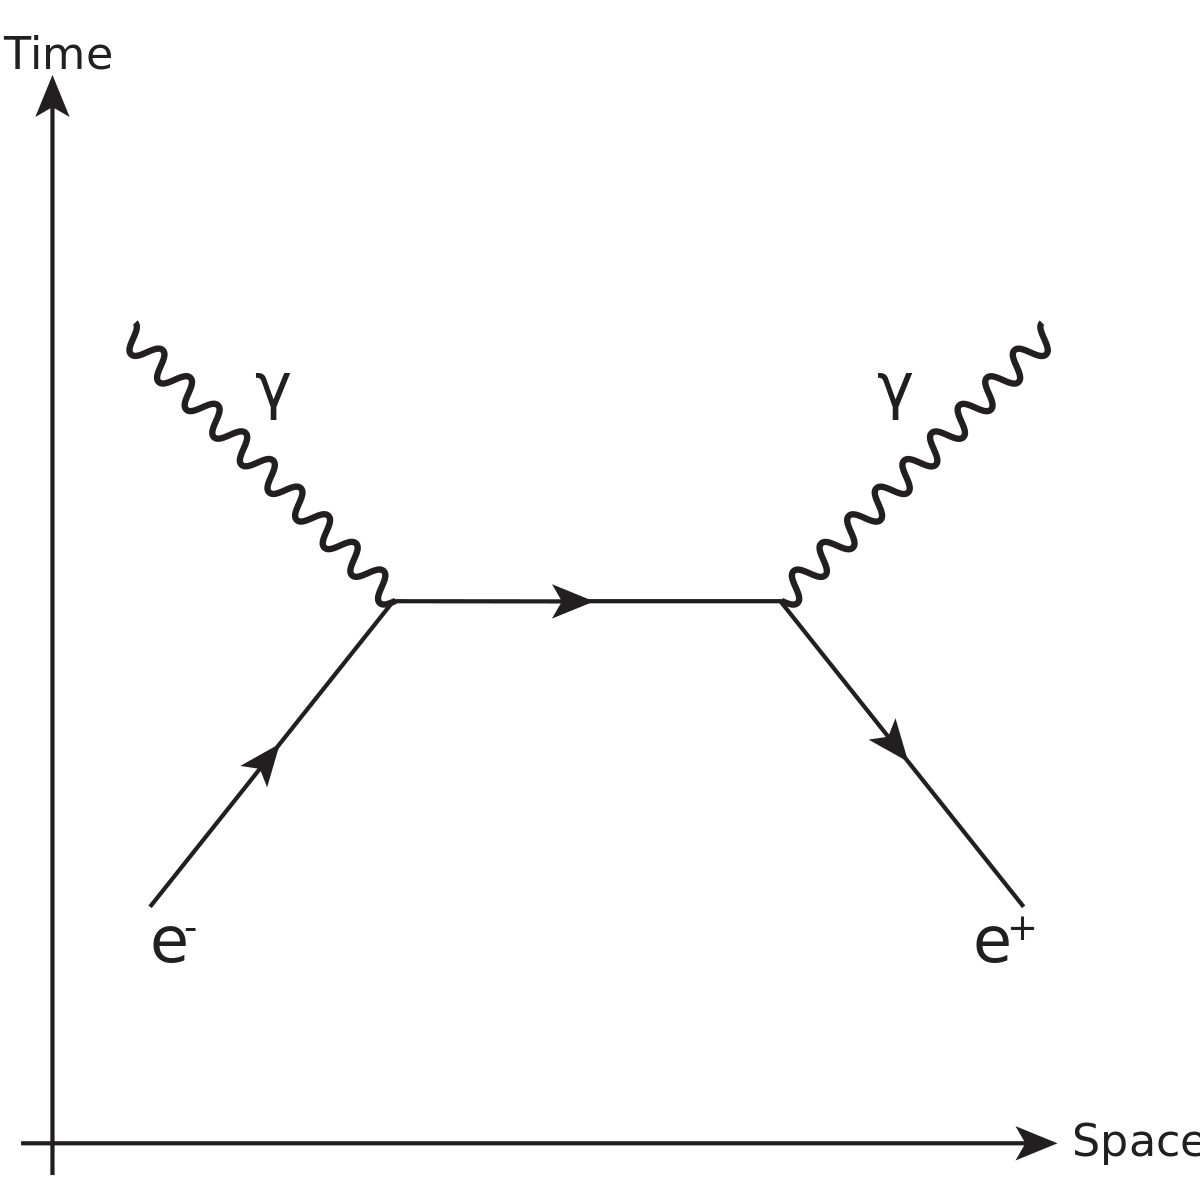 1200px-Mutual_Annihilation_of_a_Positron_Electron_pair.svg.png